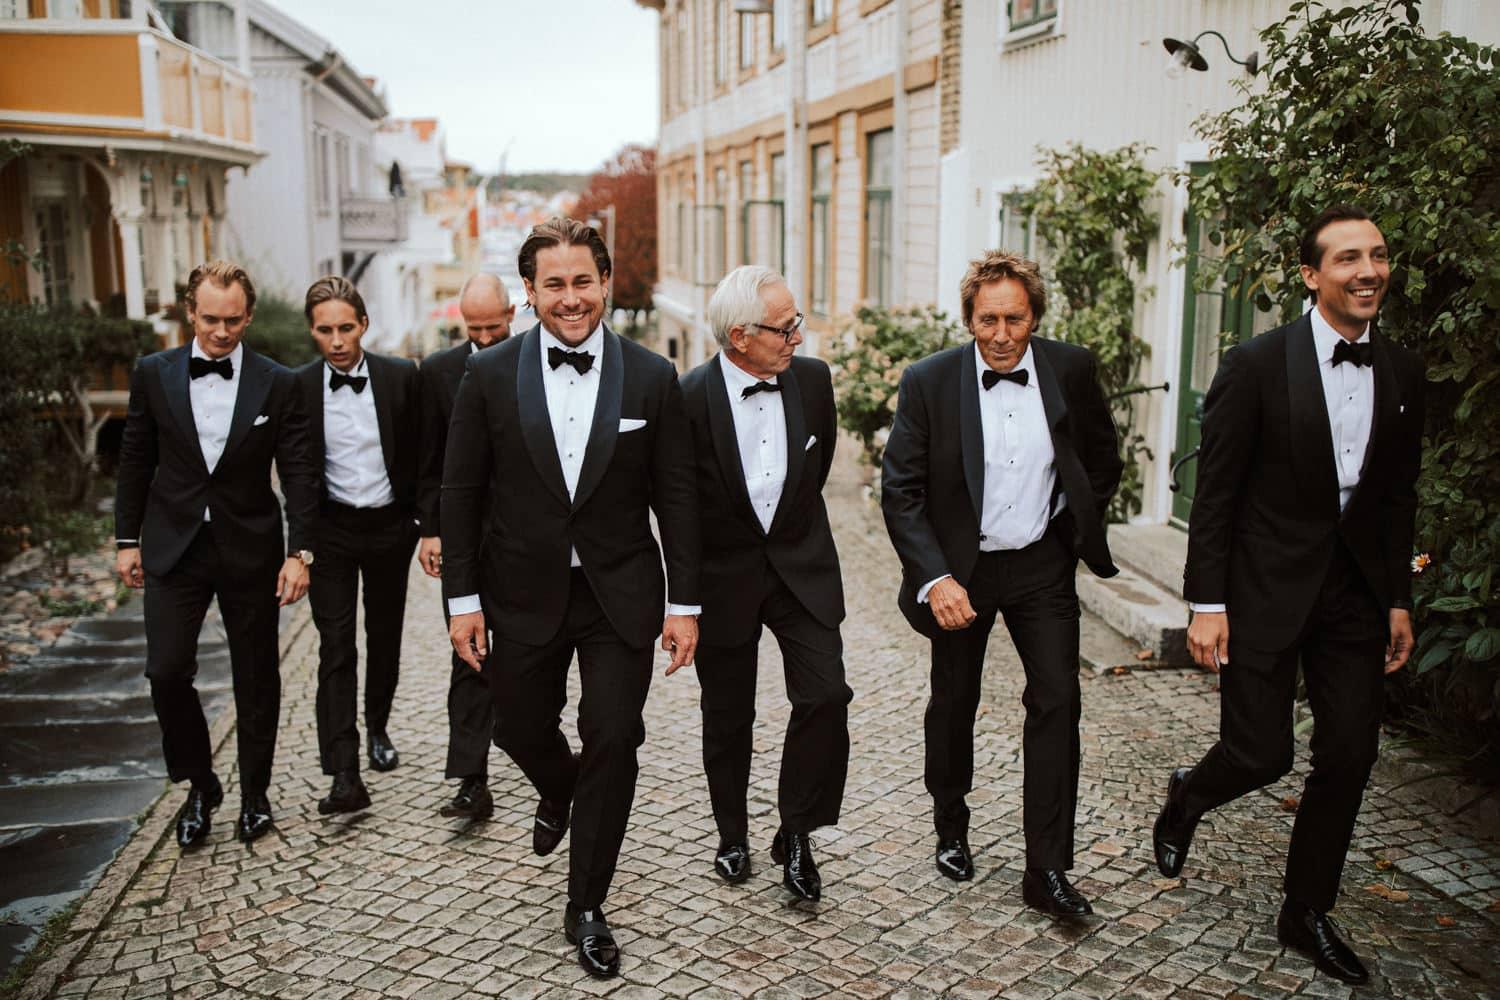 The groom and his groomsmen are walking towards the wedding location.